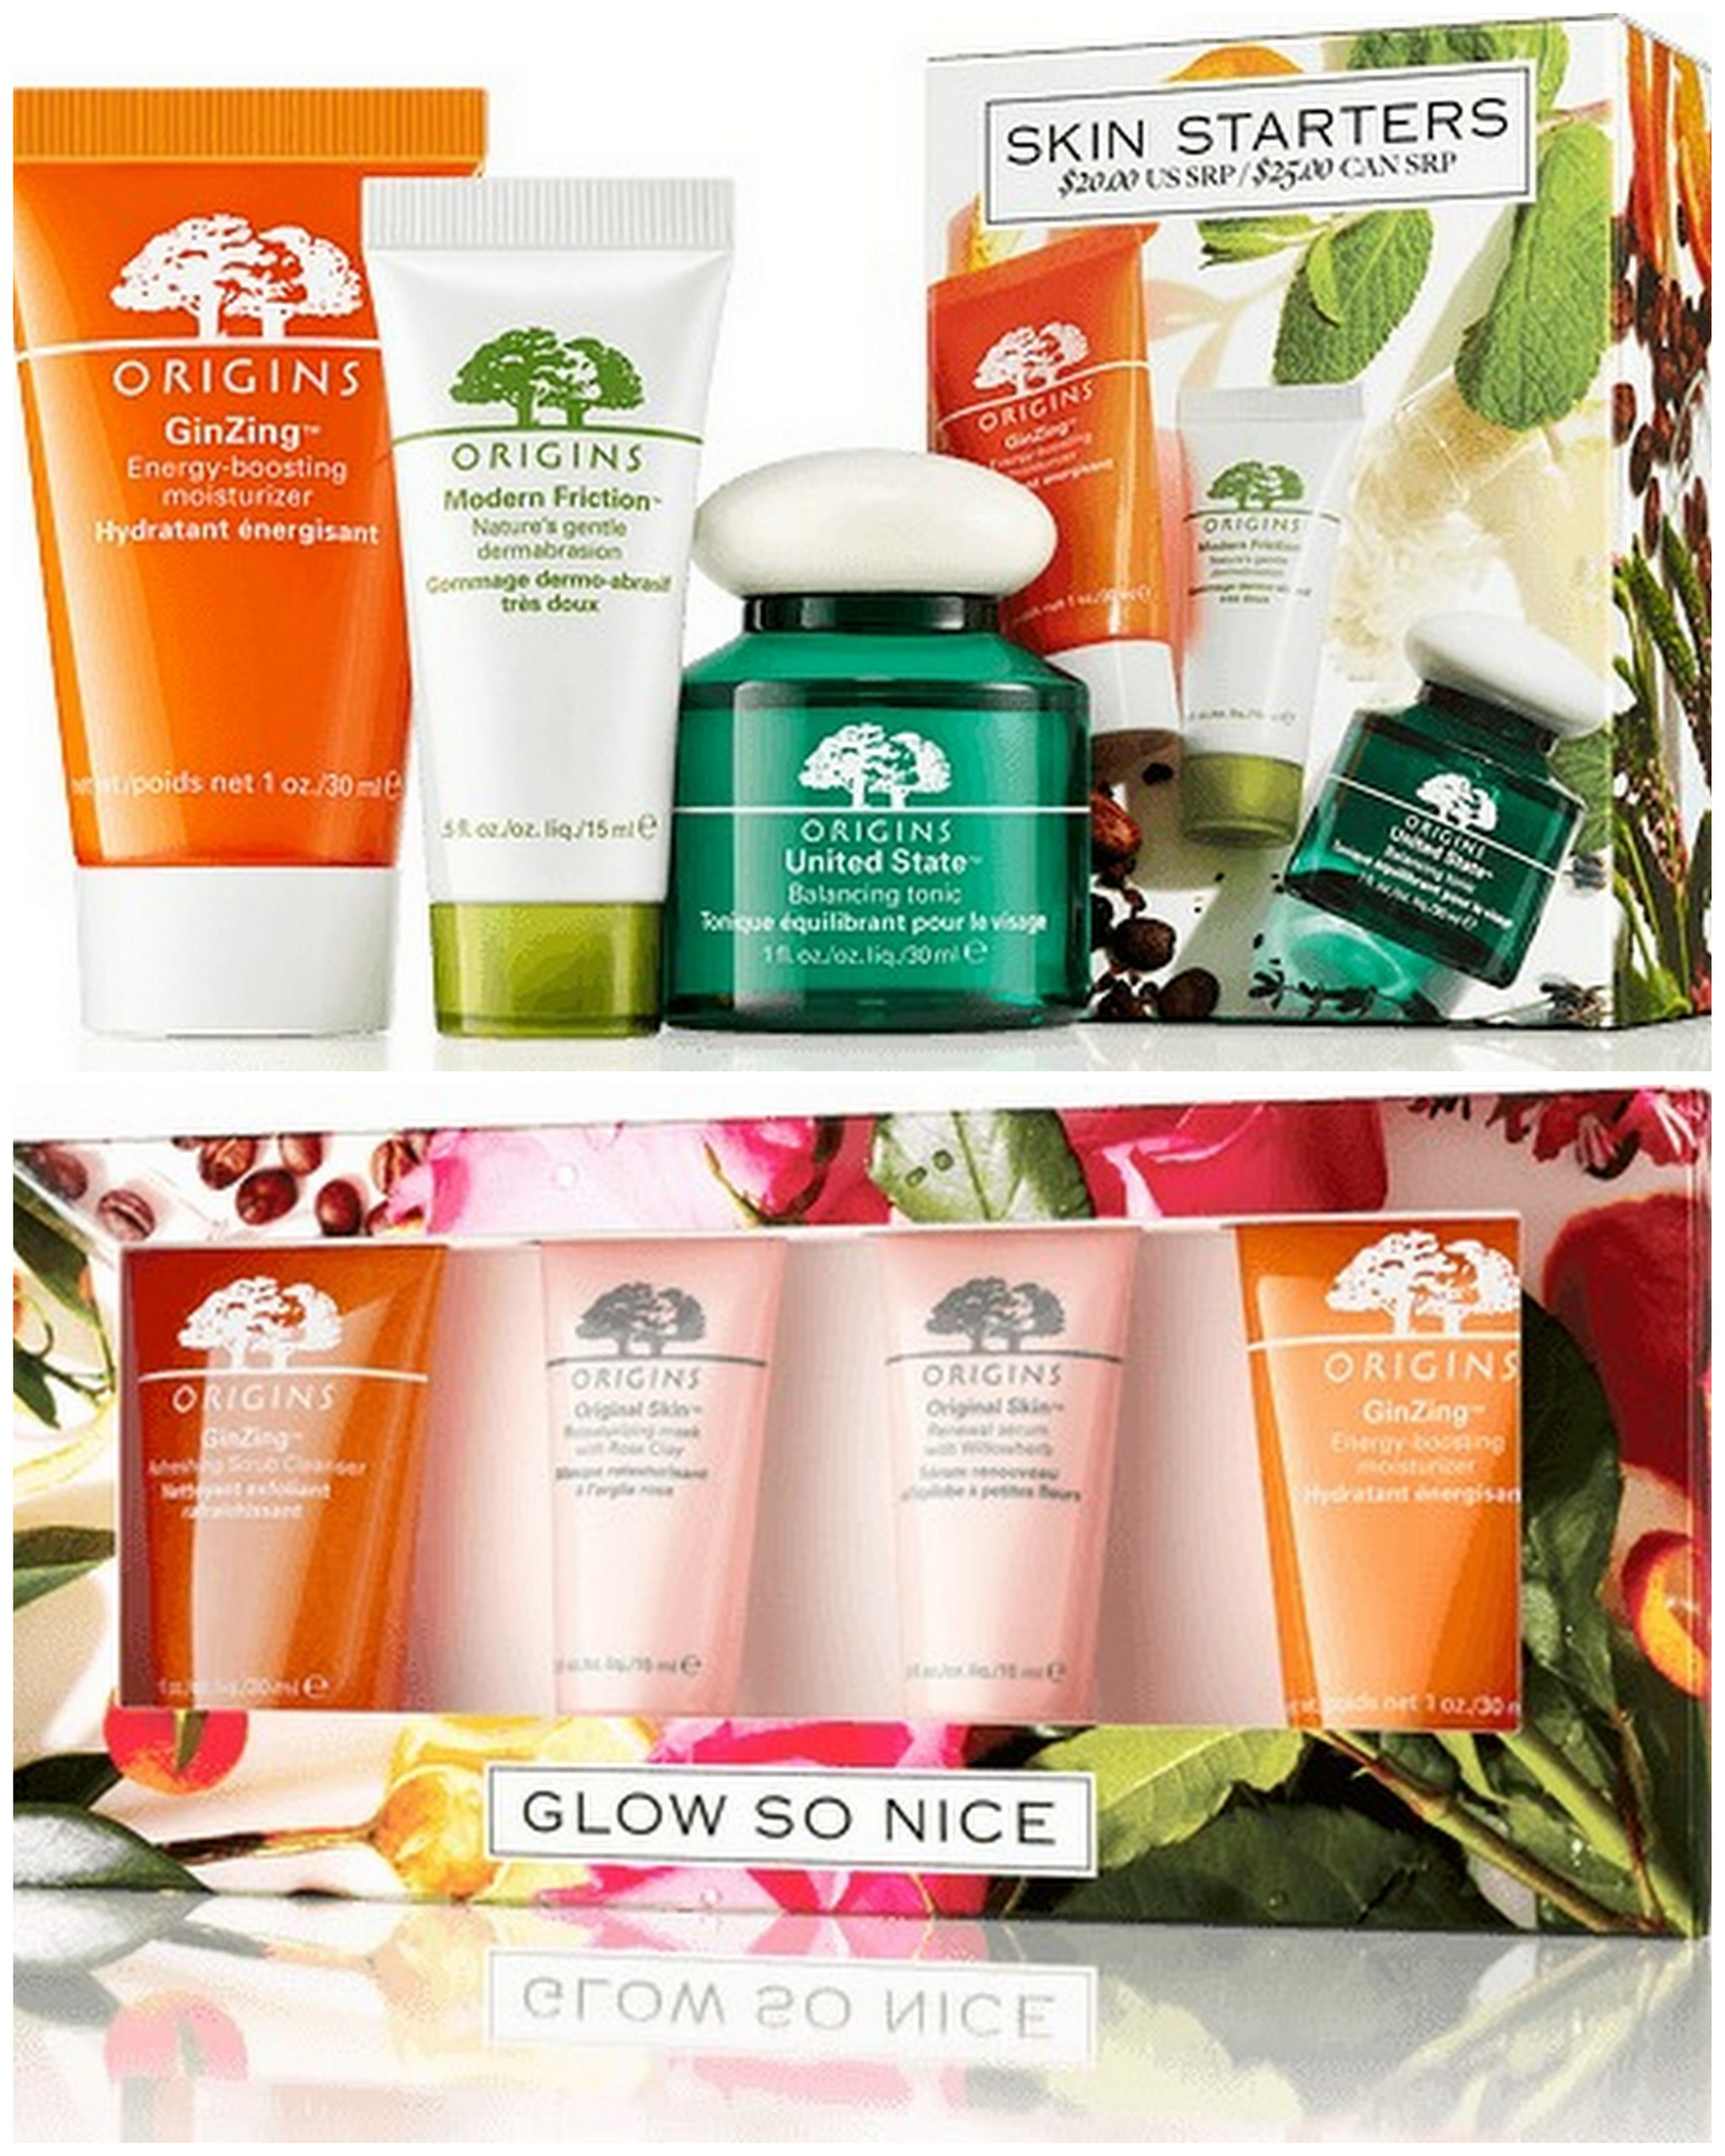 Origins Skin Starters and Glow So Nice Travel Skincare Kits